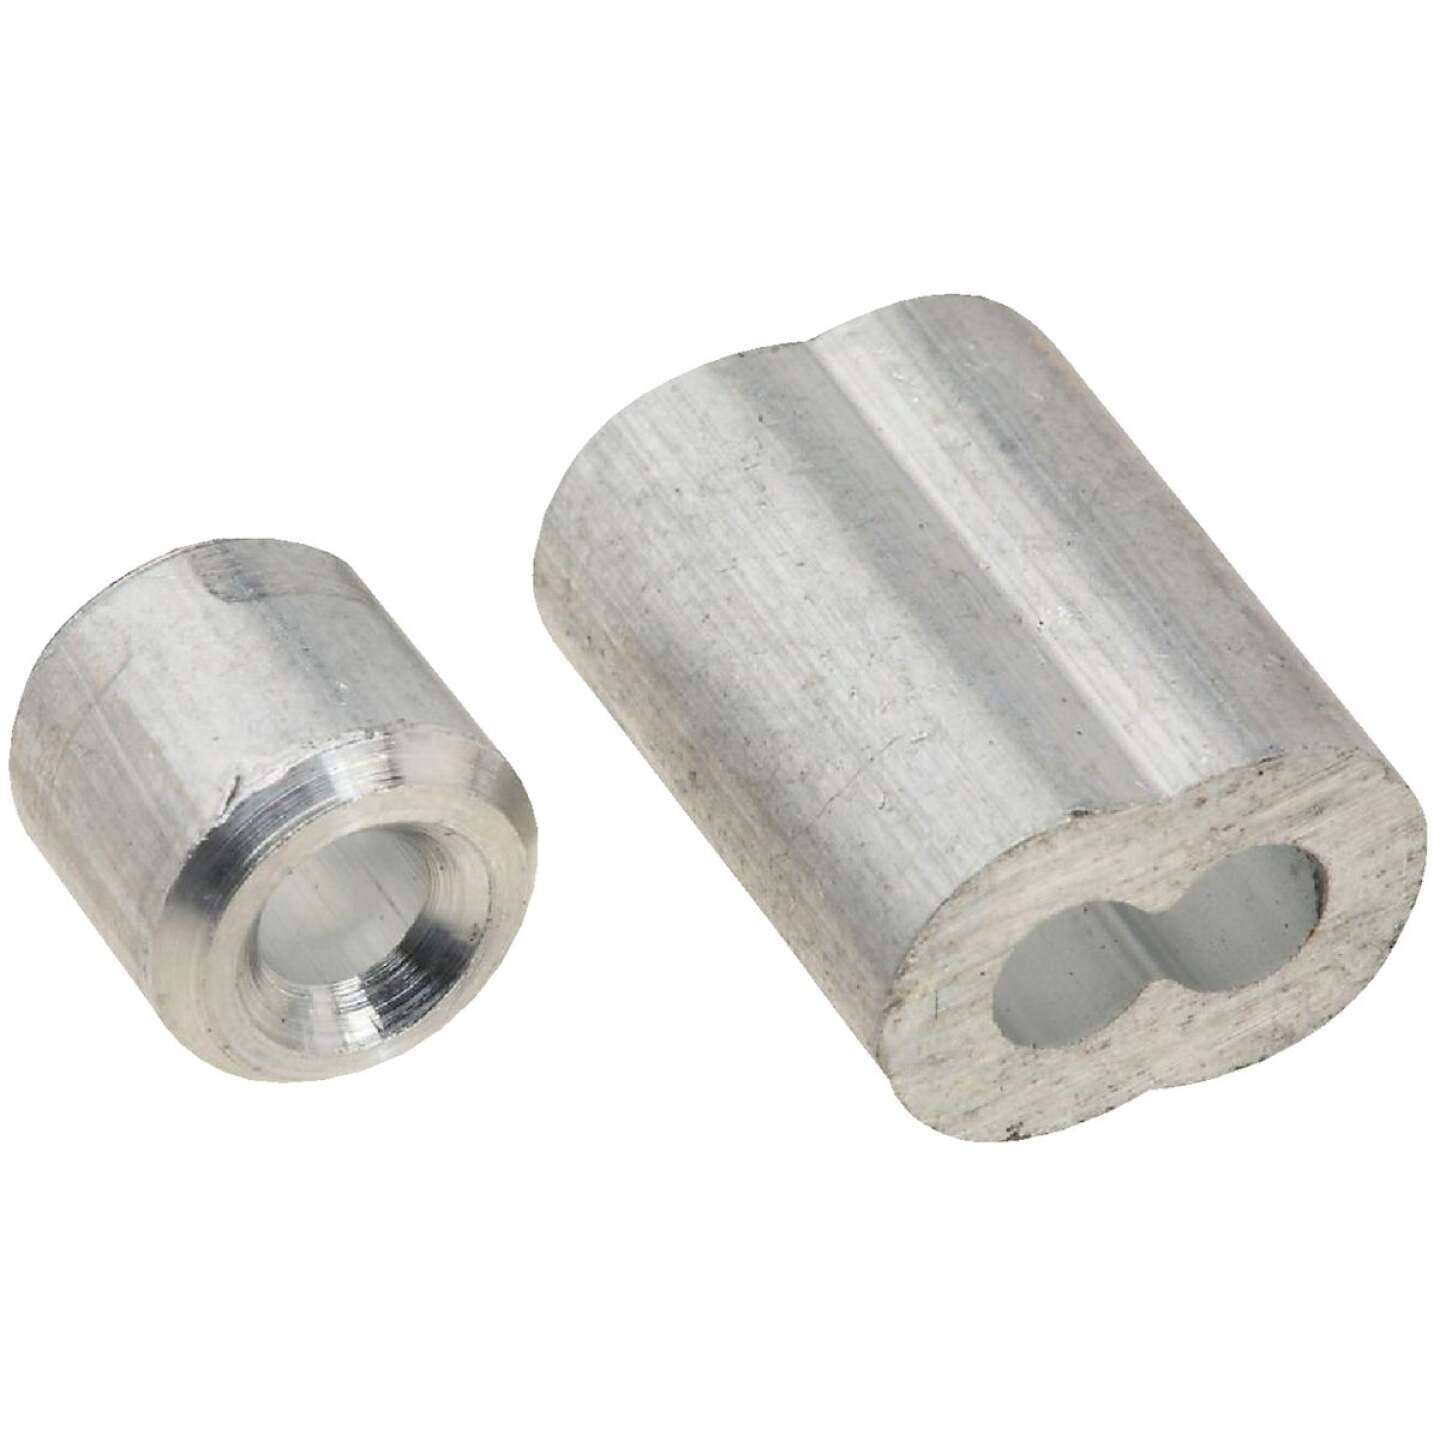 National 1/8 In. Aluminum Garage Door Ferrule & Stop Kit Image 1